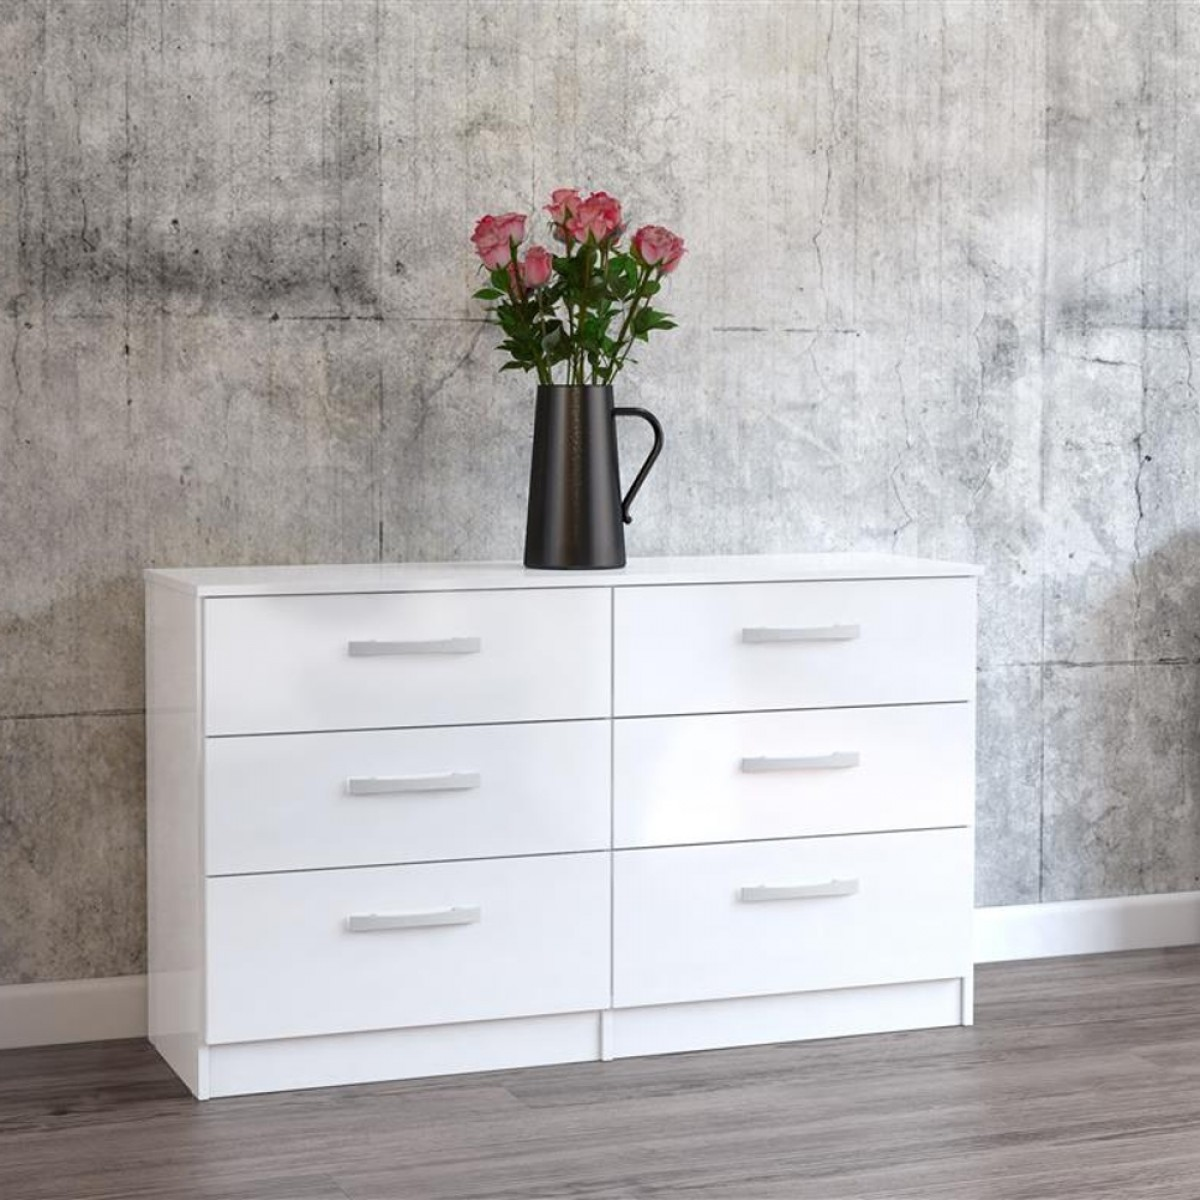 Lynx 6 Drawer Chest White